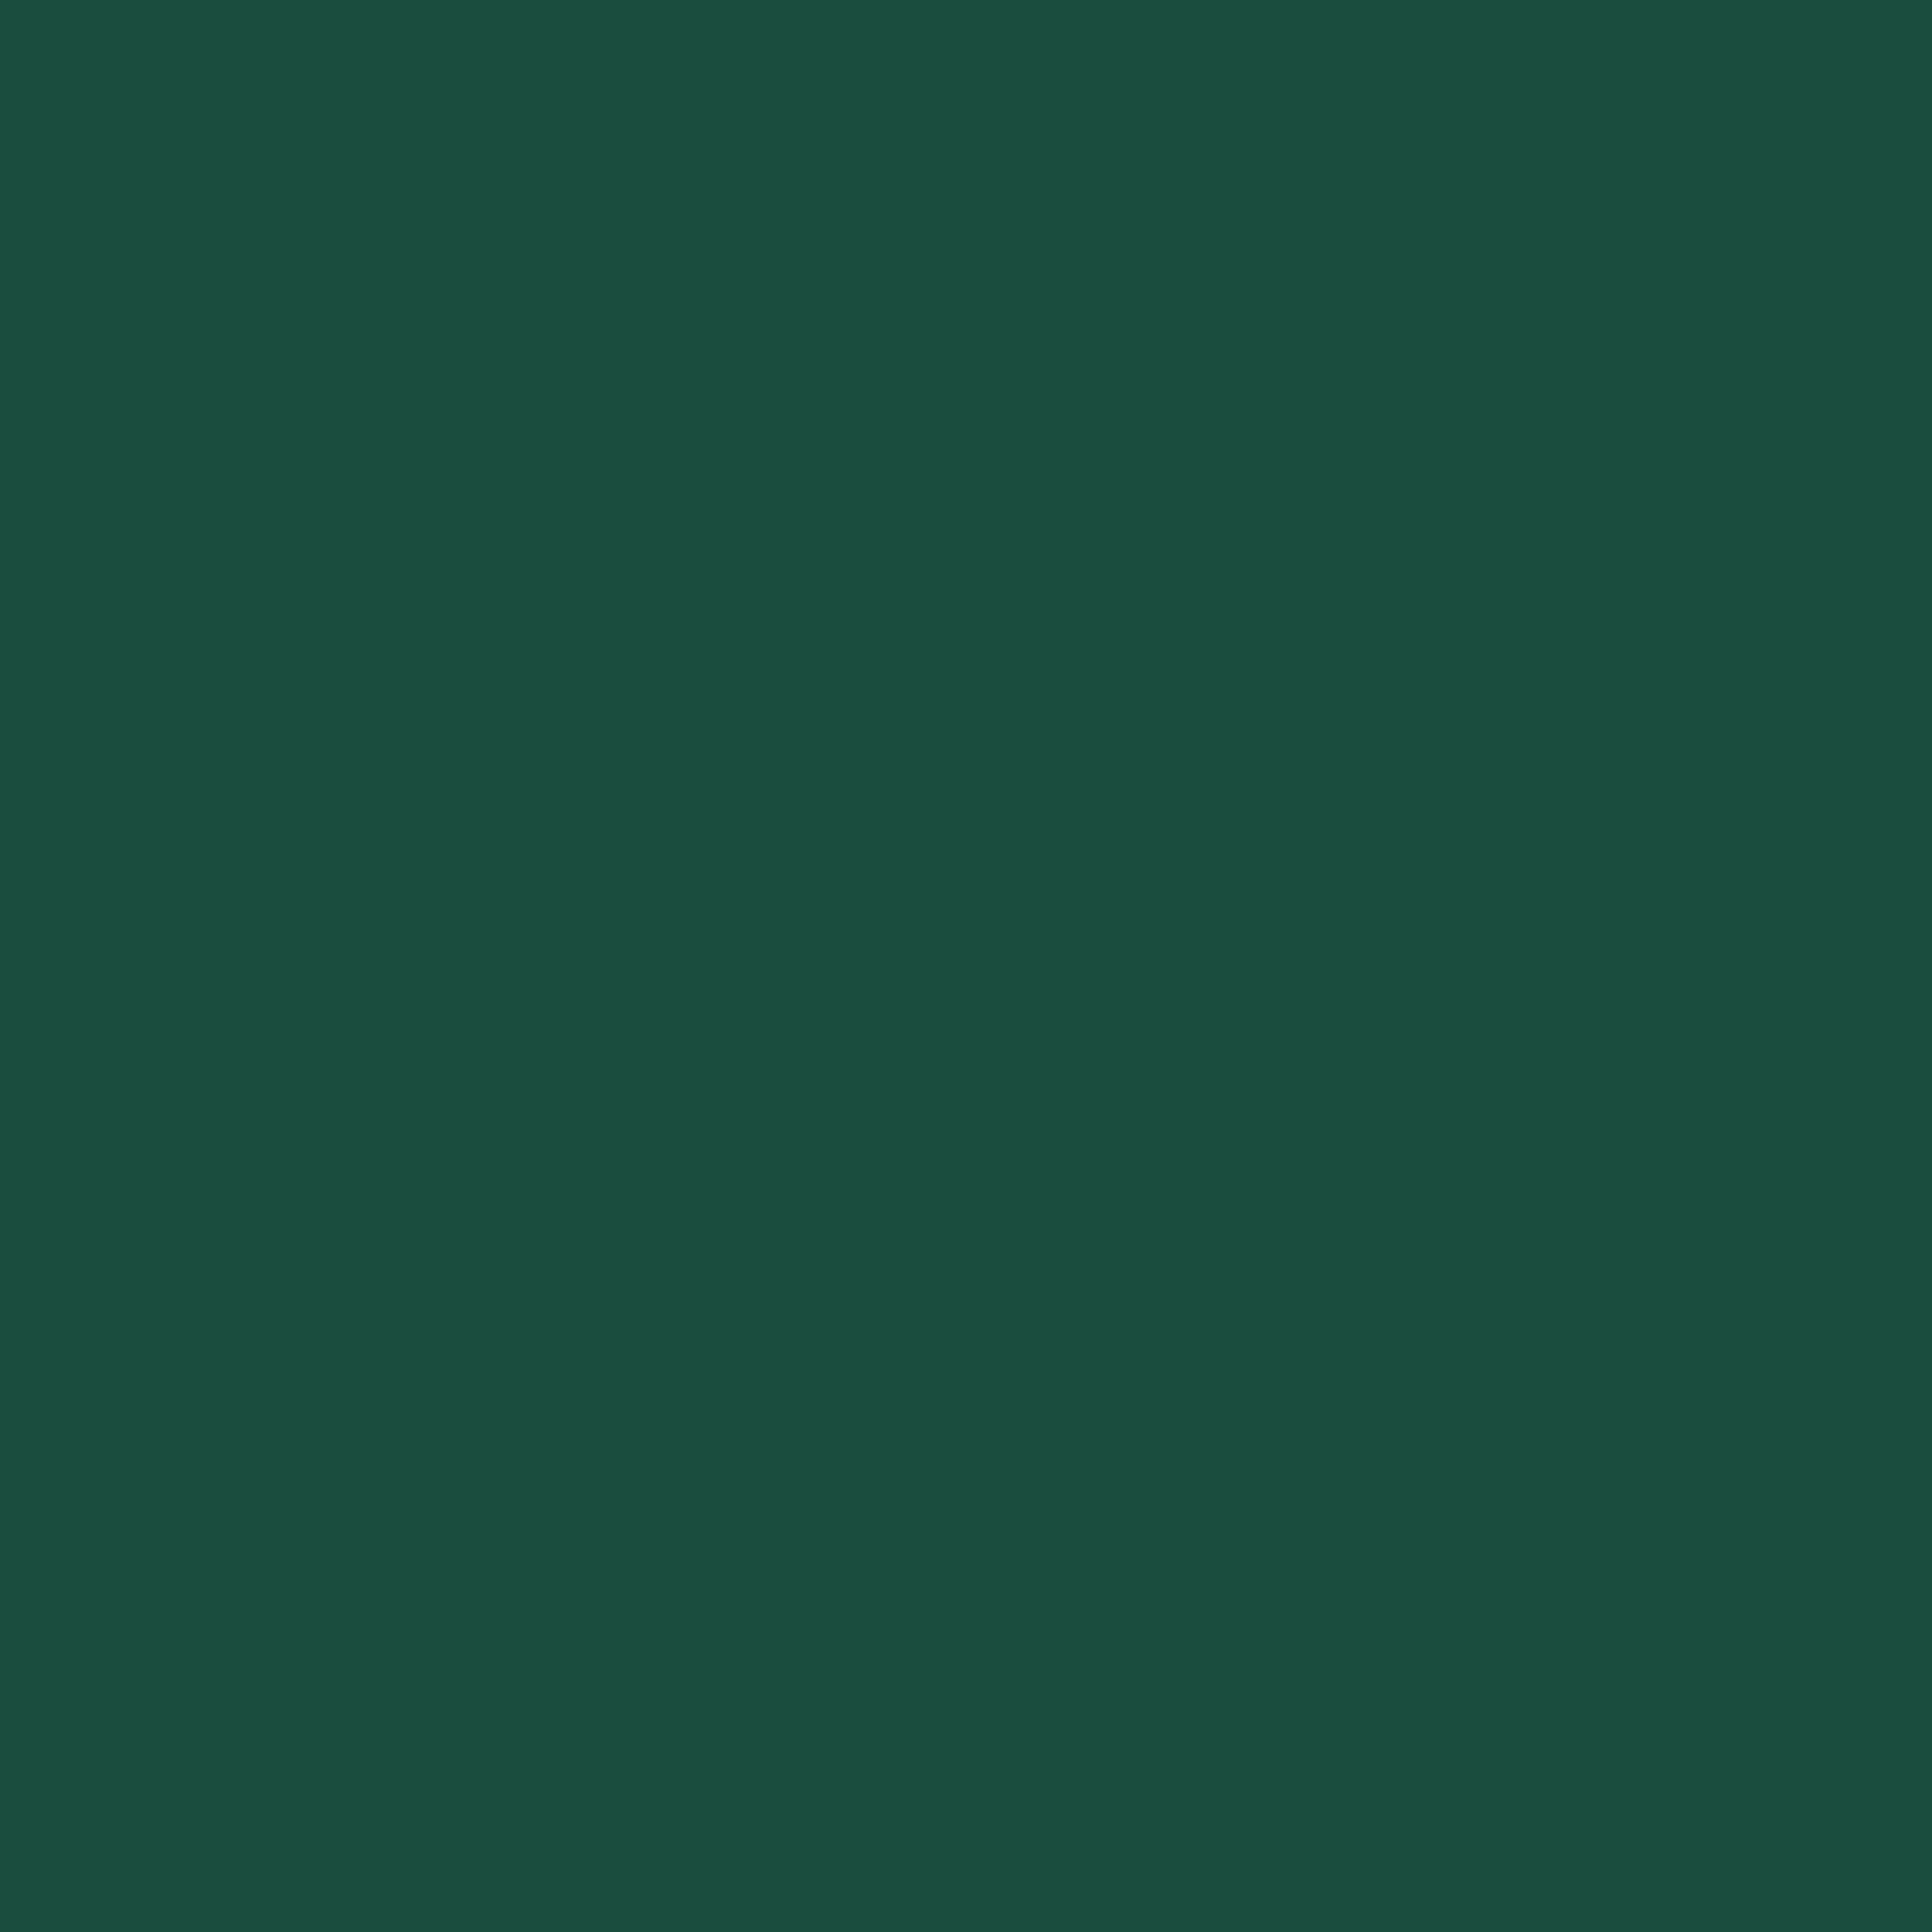 2732x2732 English Green Solid Color Background